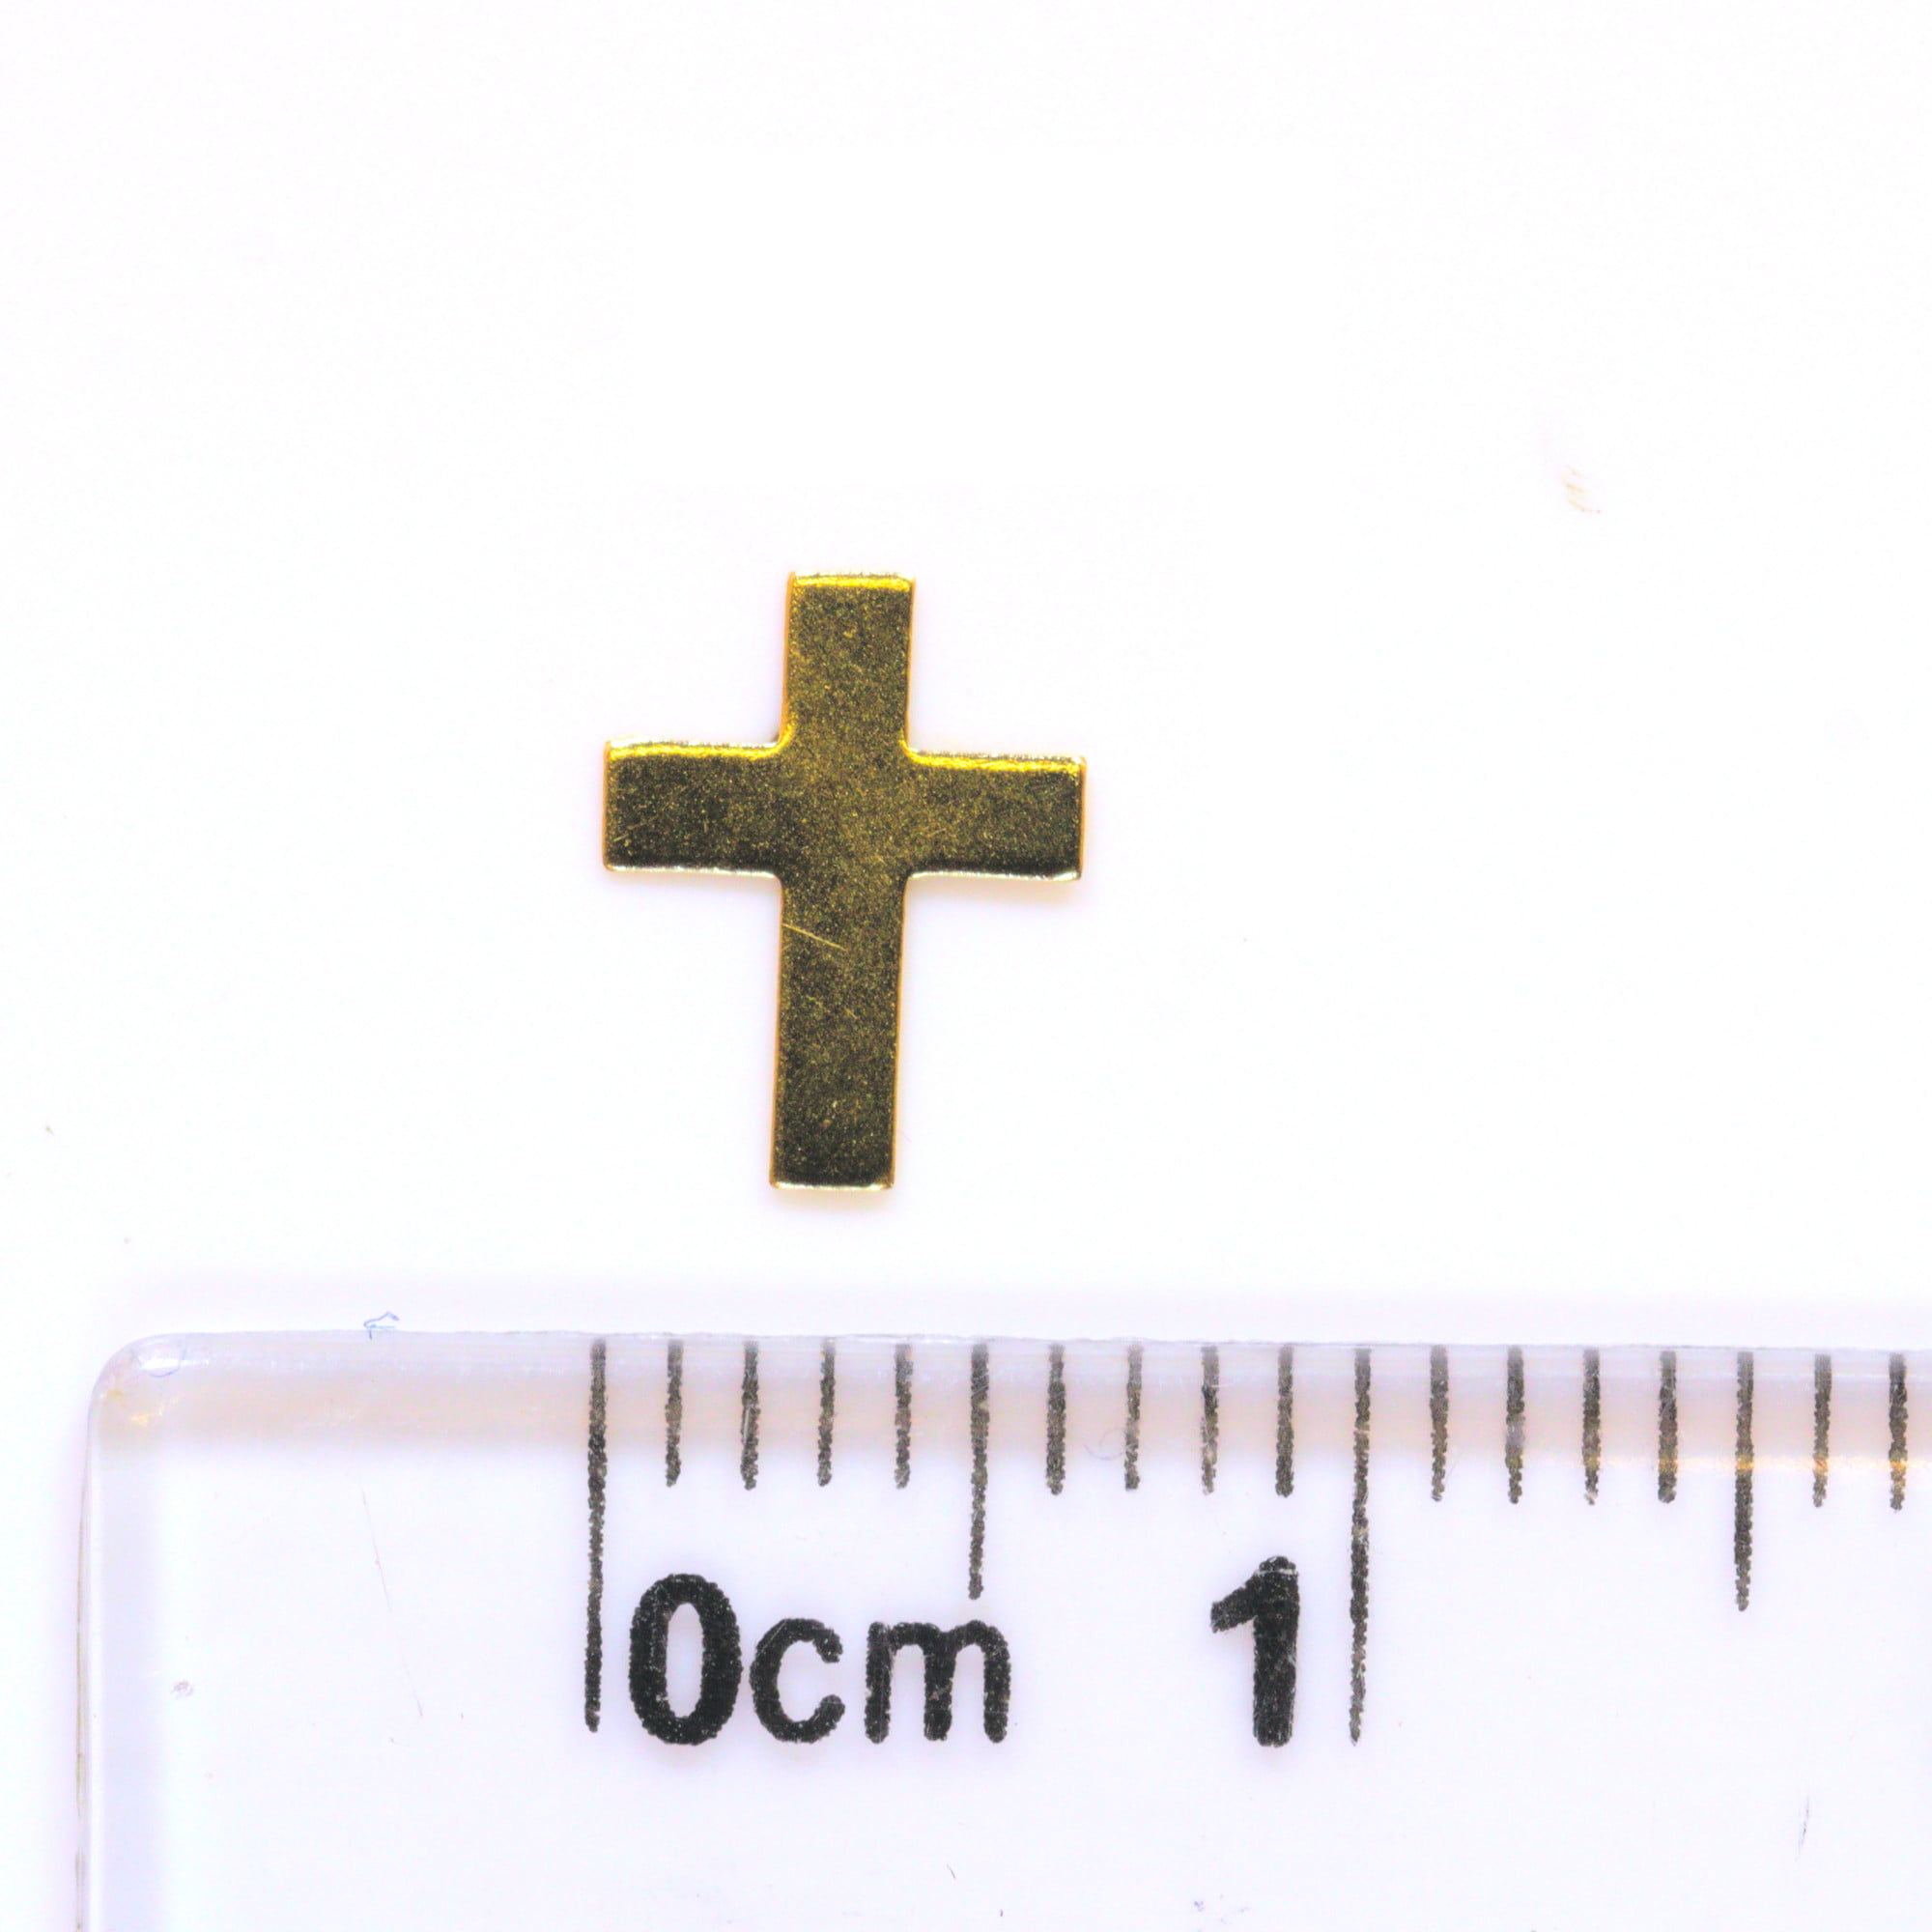 Small religious cross stud earrings in 9ct yellow gold with ruler